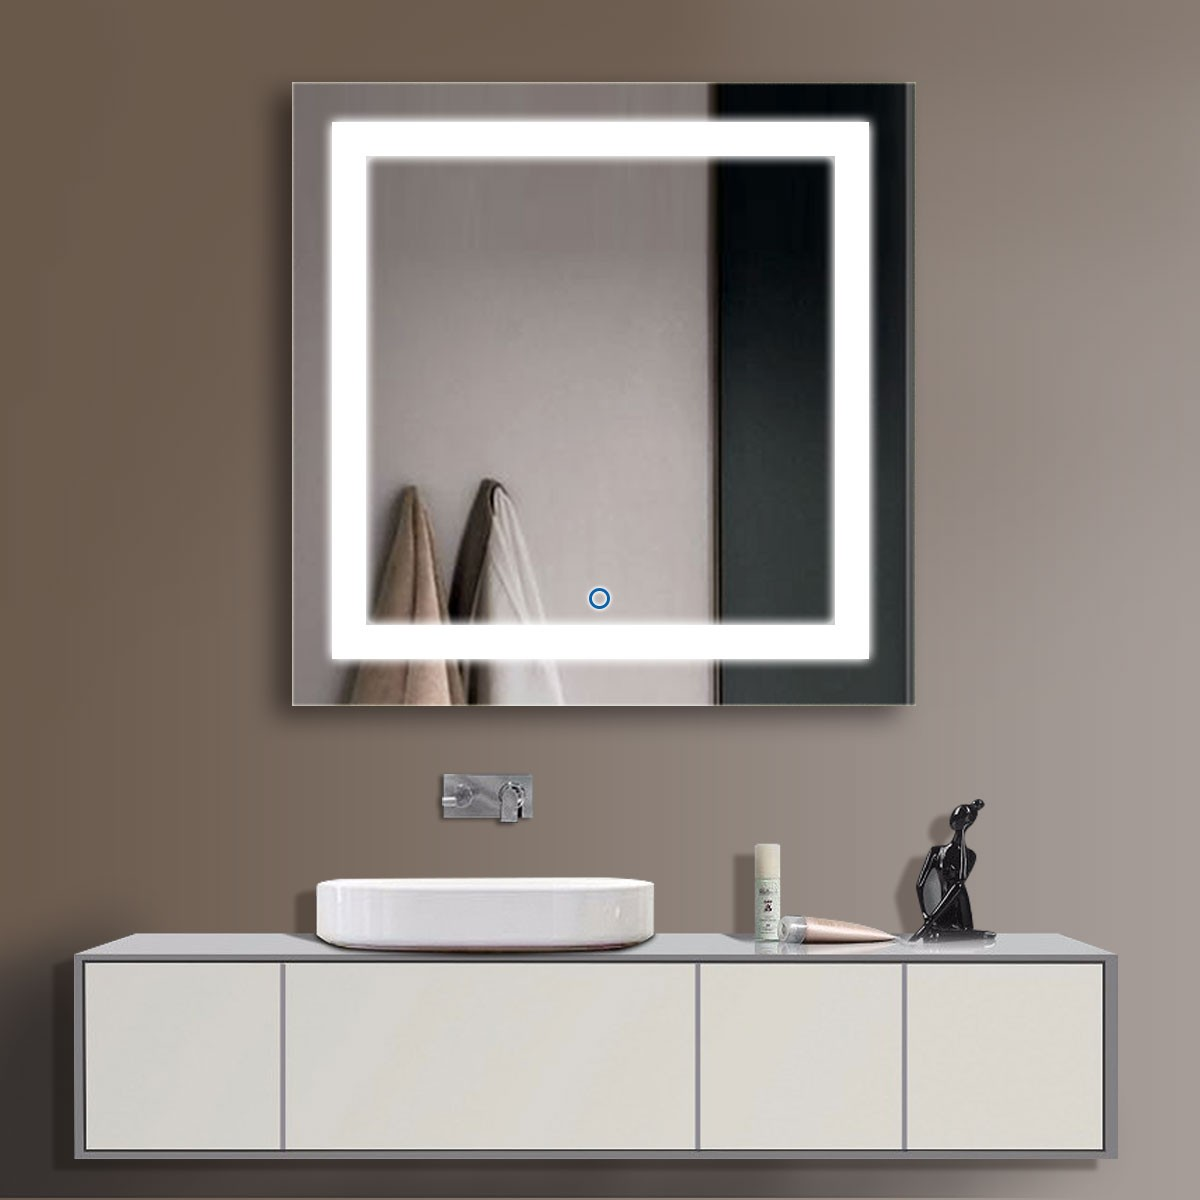 Decoraport Square 36 Bathroom Mirrors For Wall Mirror Makeup Frameless Vanity Lights X Inch Ck168 E